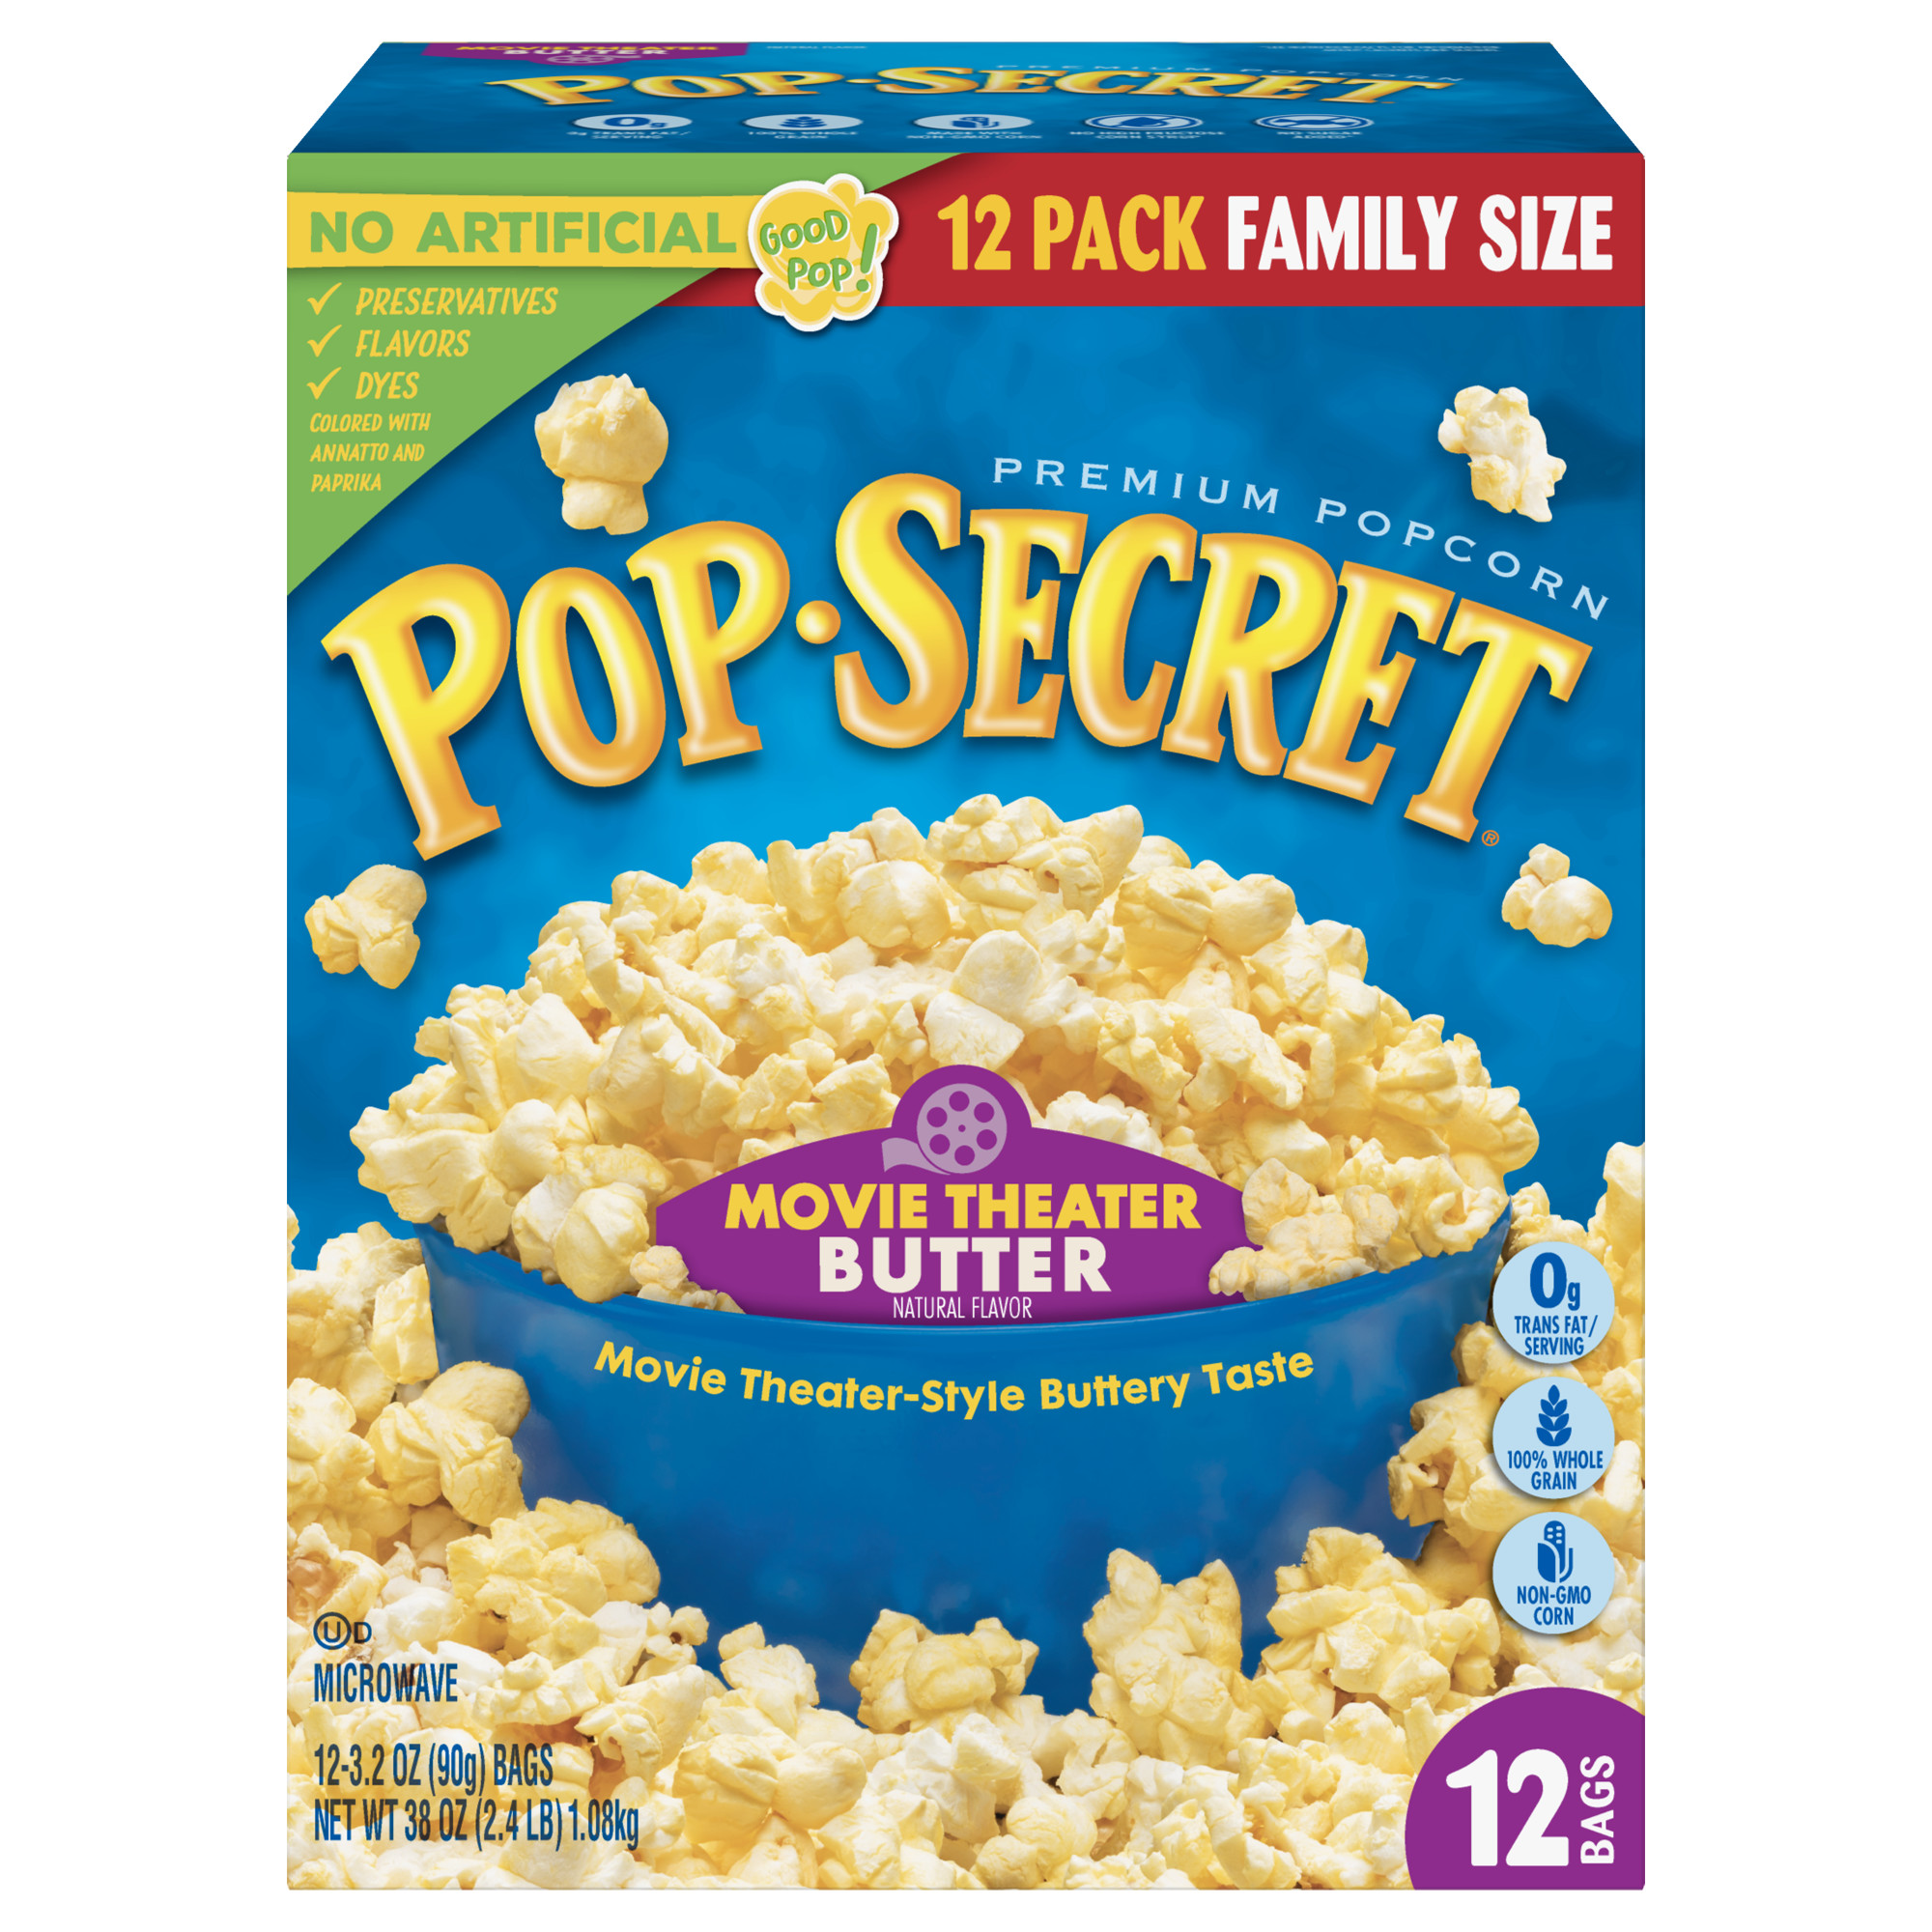 Pop Secret Microwave Popcorn, Movie Theater Butter, 3.2 Oz, 12 Ct